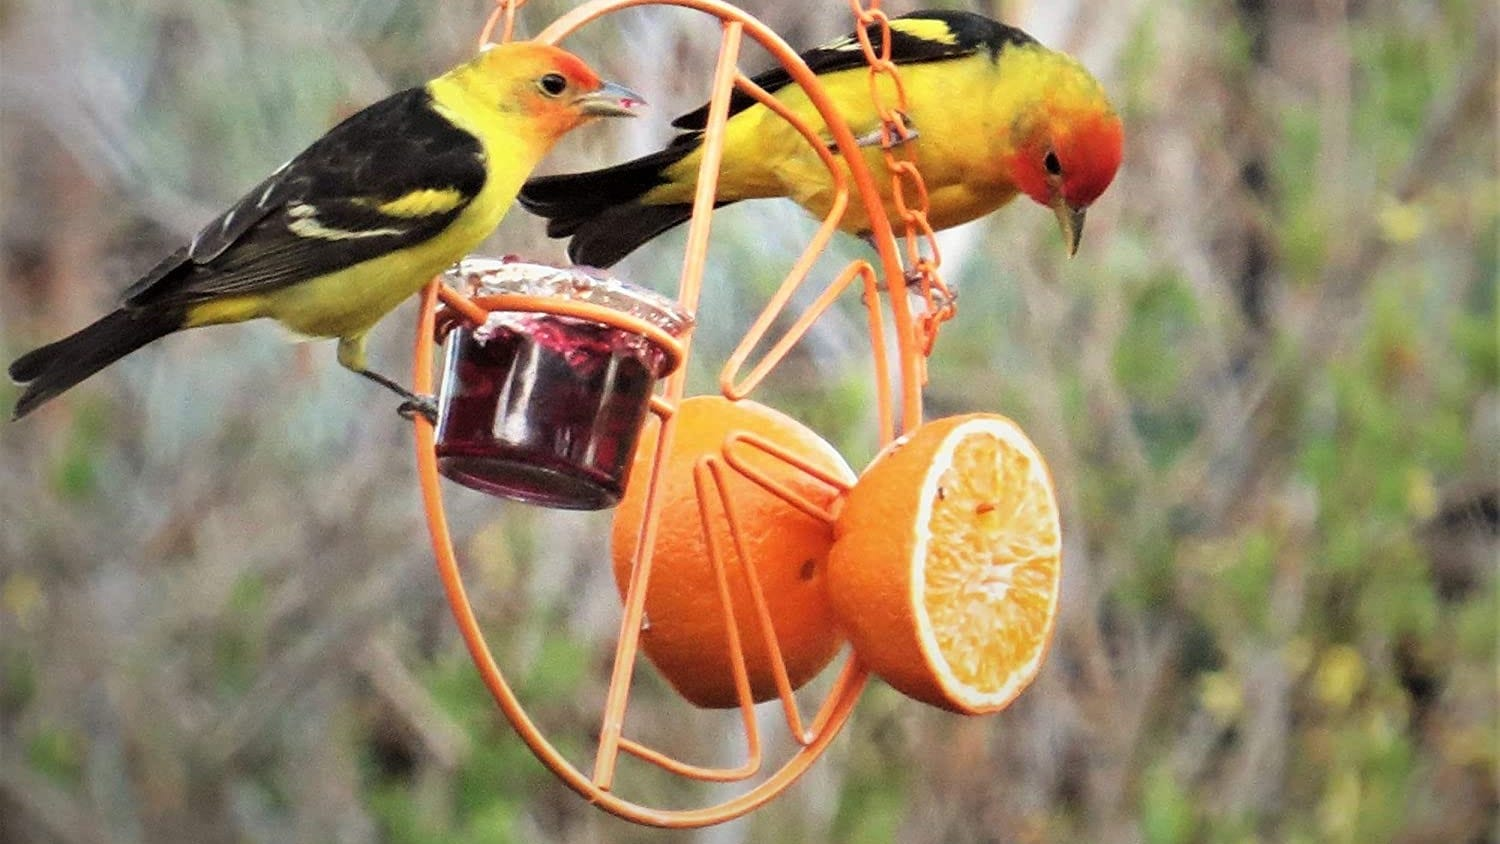 Orioles at a bird feeder with jelly and oranges.,